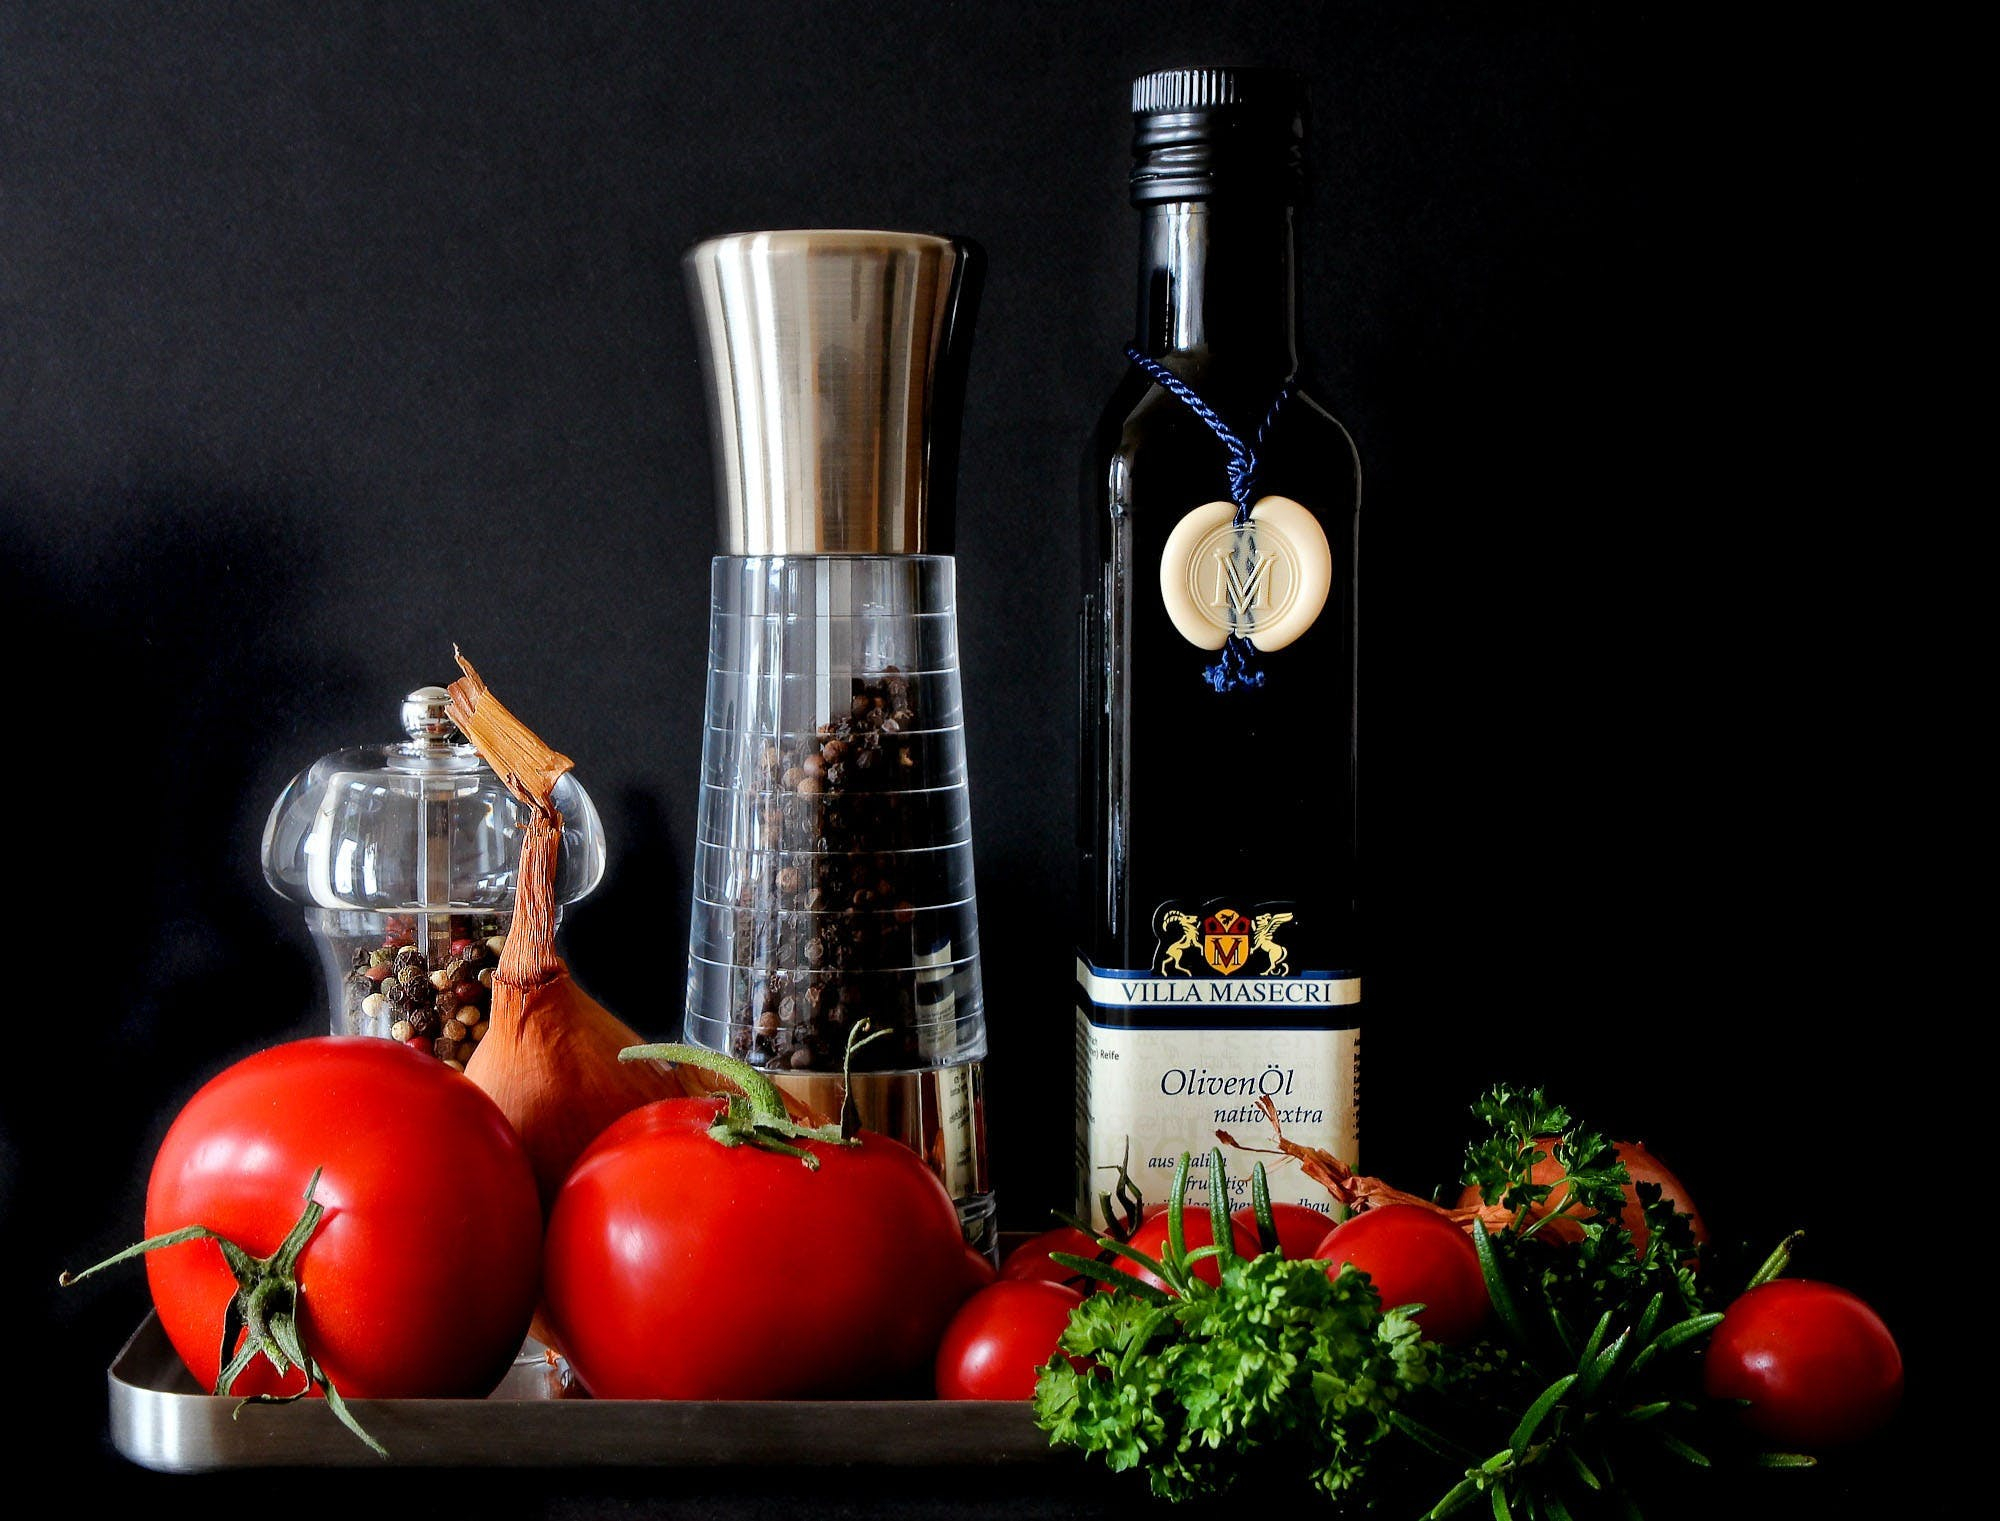 Tomatoes Beside Shakers and Olive Oil Bottle